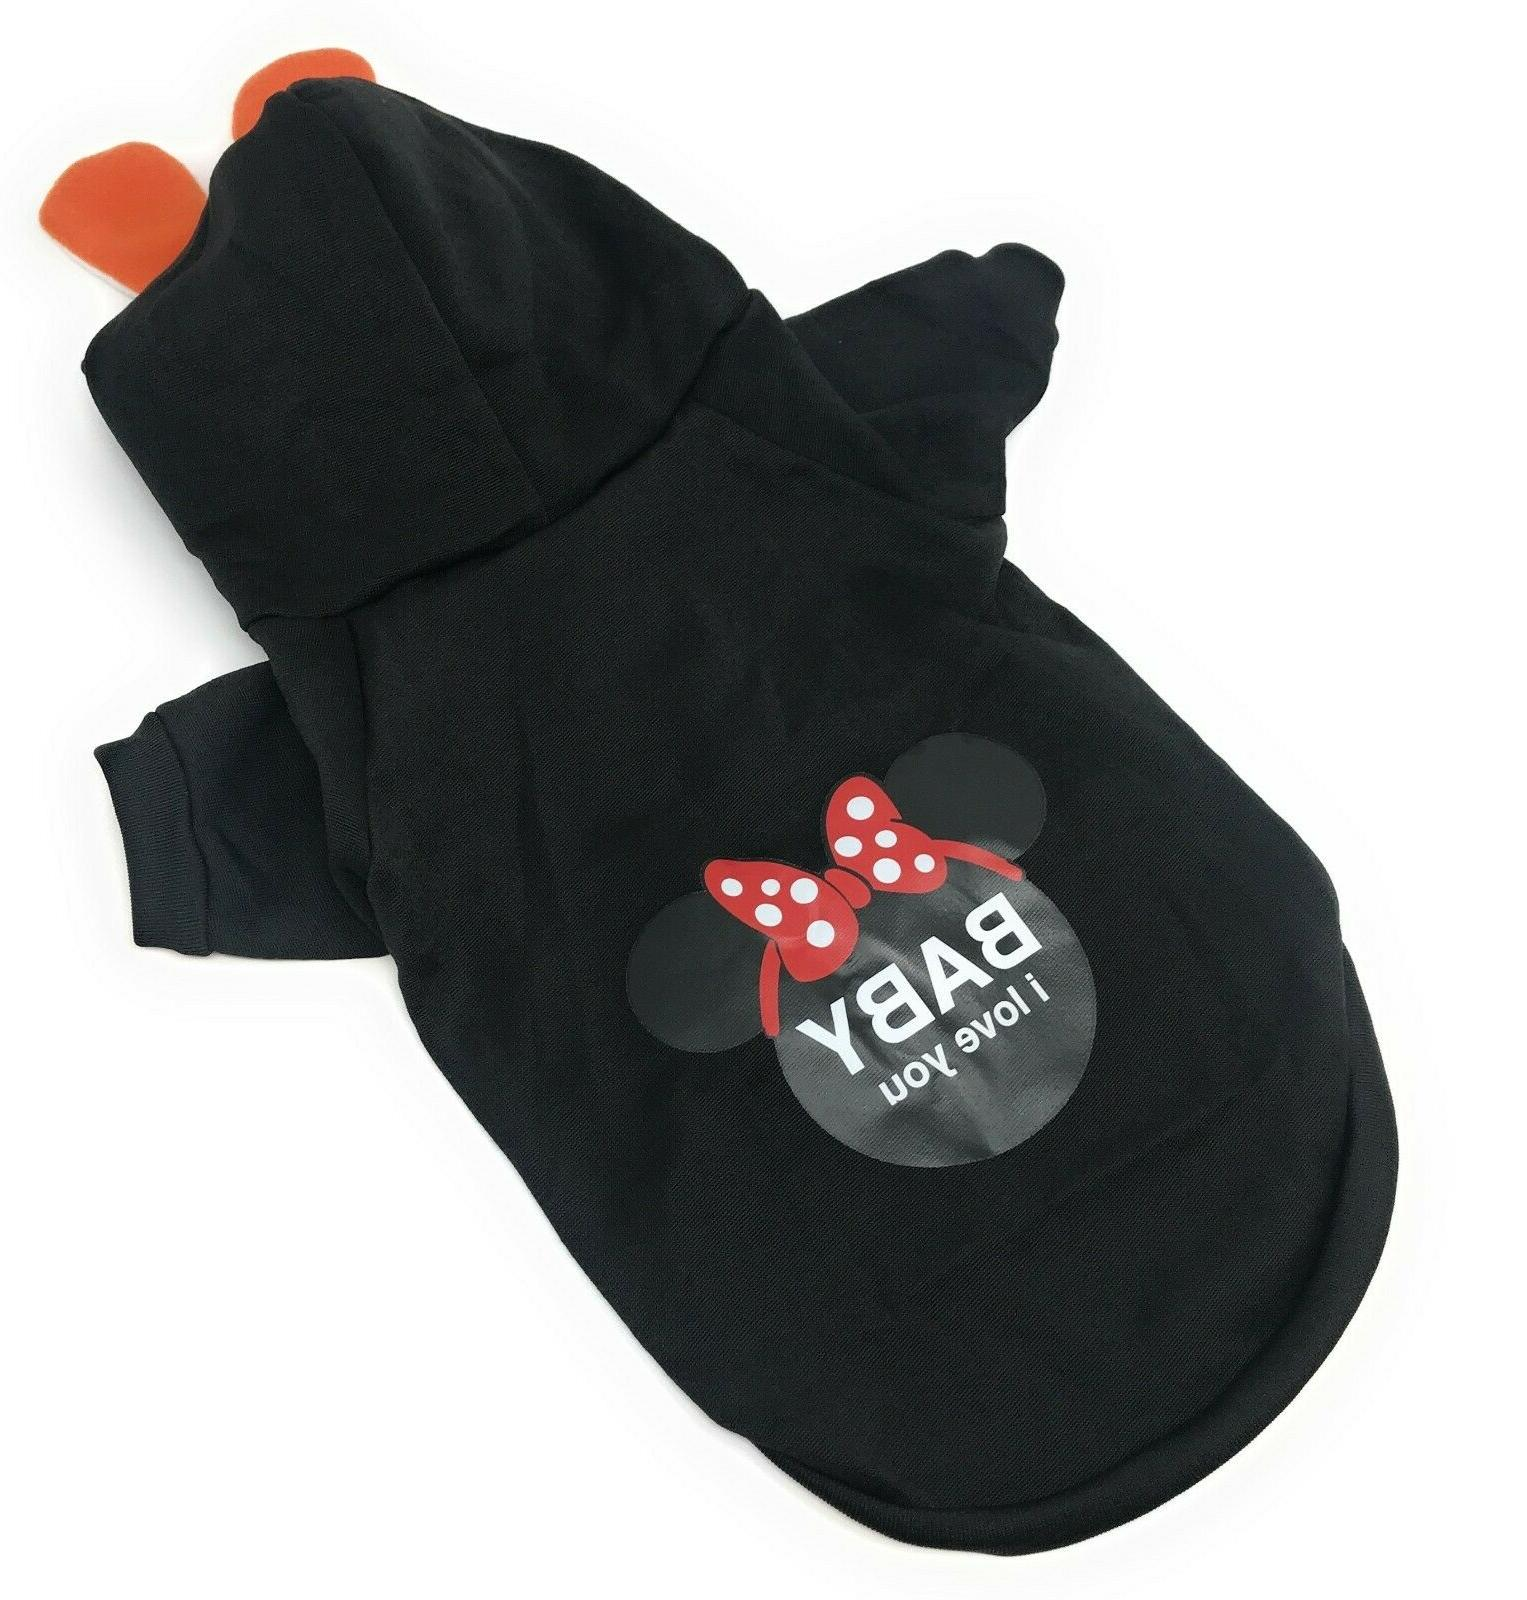 Hoodie Clothes Winter Coat Jacket for Dogs